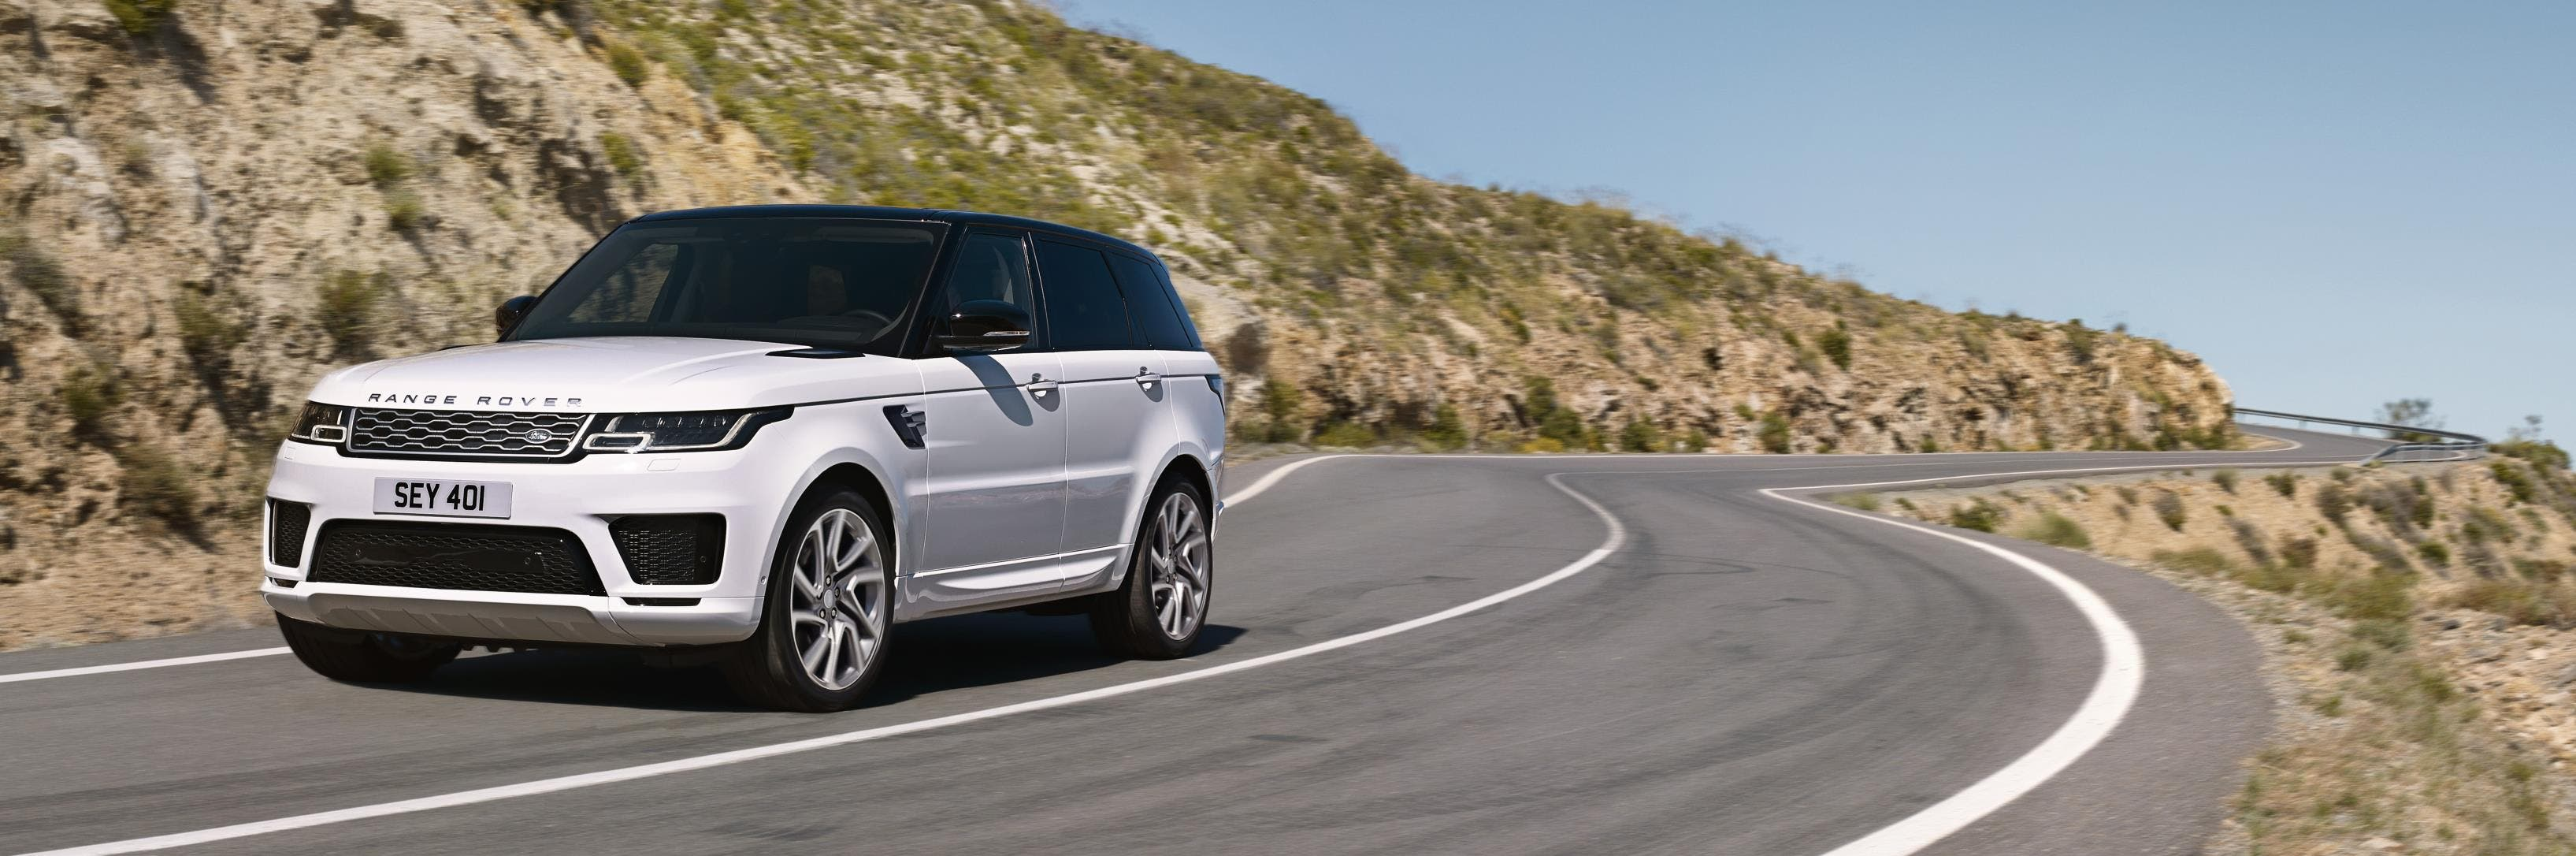 Range Rover S First Plug In Hybrid Offering The Sport P400e Has Been Granted An Nedc Rating Of 31 Miles Per Charge And A Fuel Economy